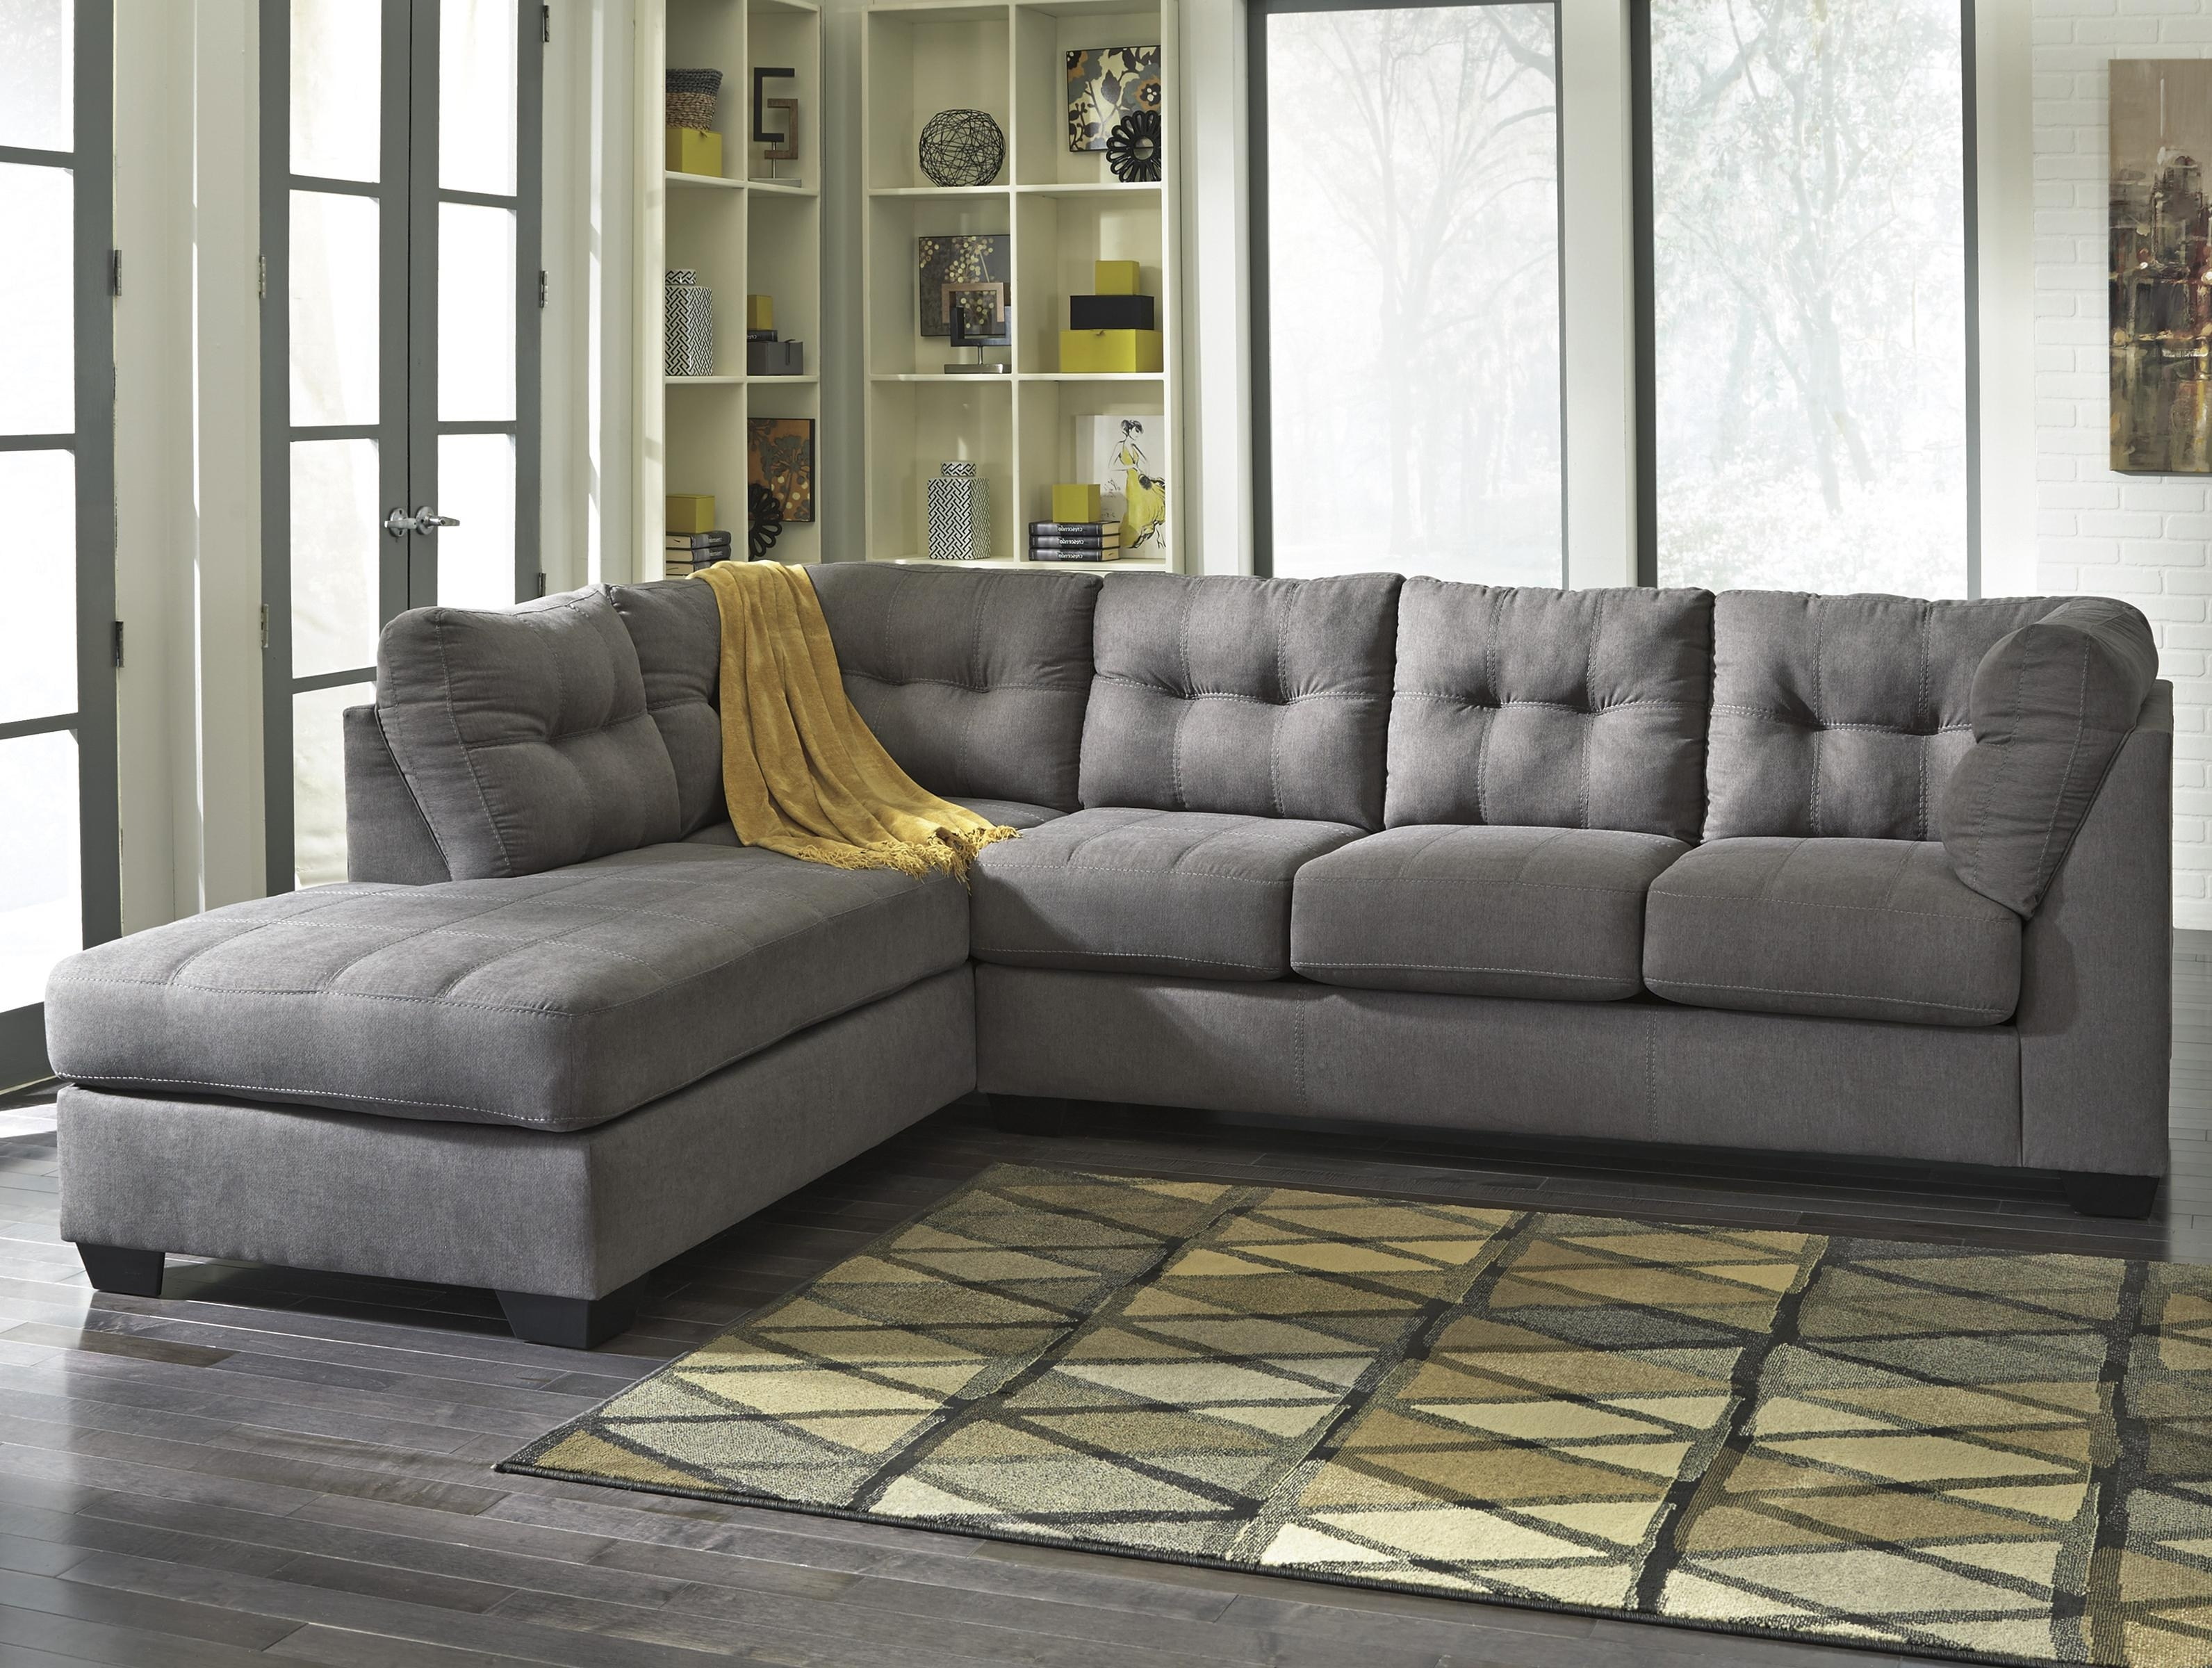 Choosing 2 Piece Sectional Sofa – Elites Home Decor Throughout Kerri 2 Piece Sectionals With Laf Chaise (View 19 of 25)